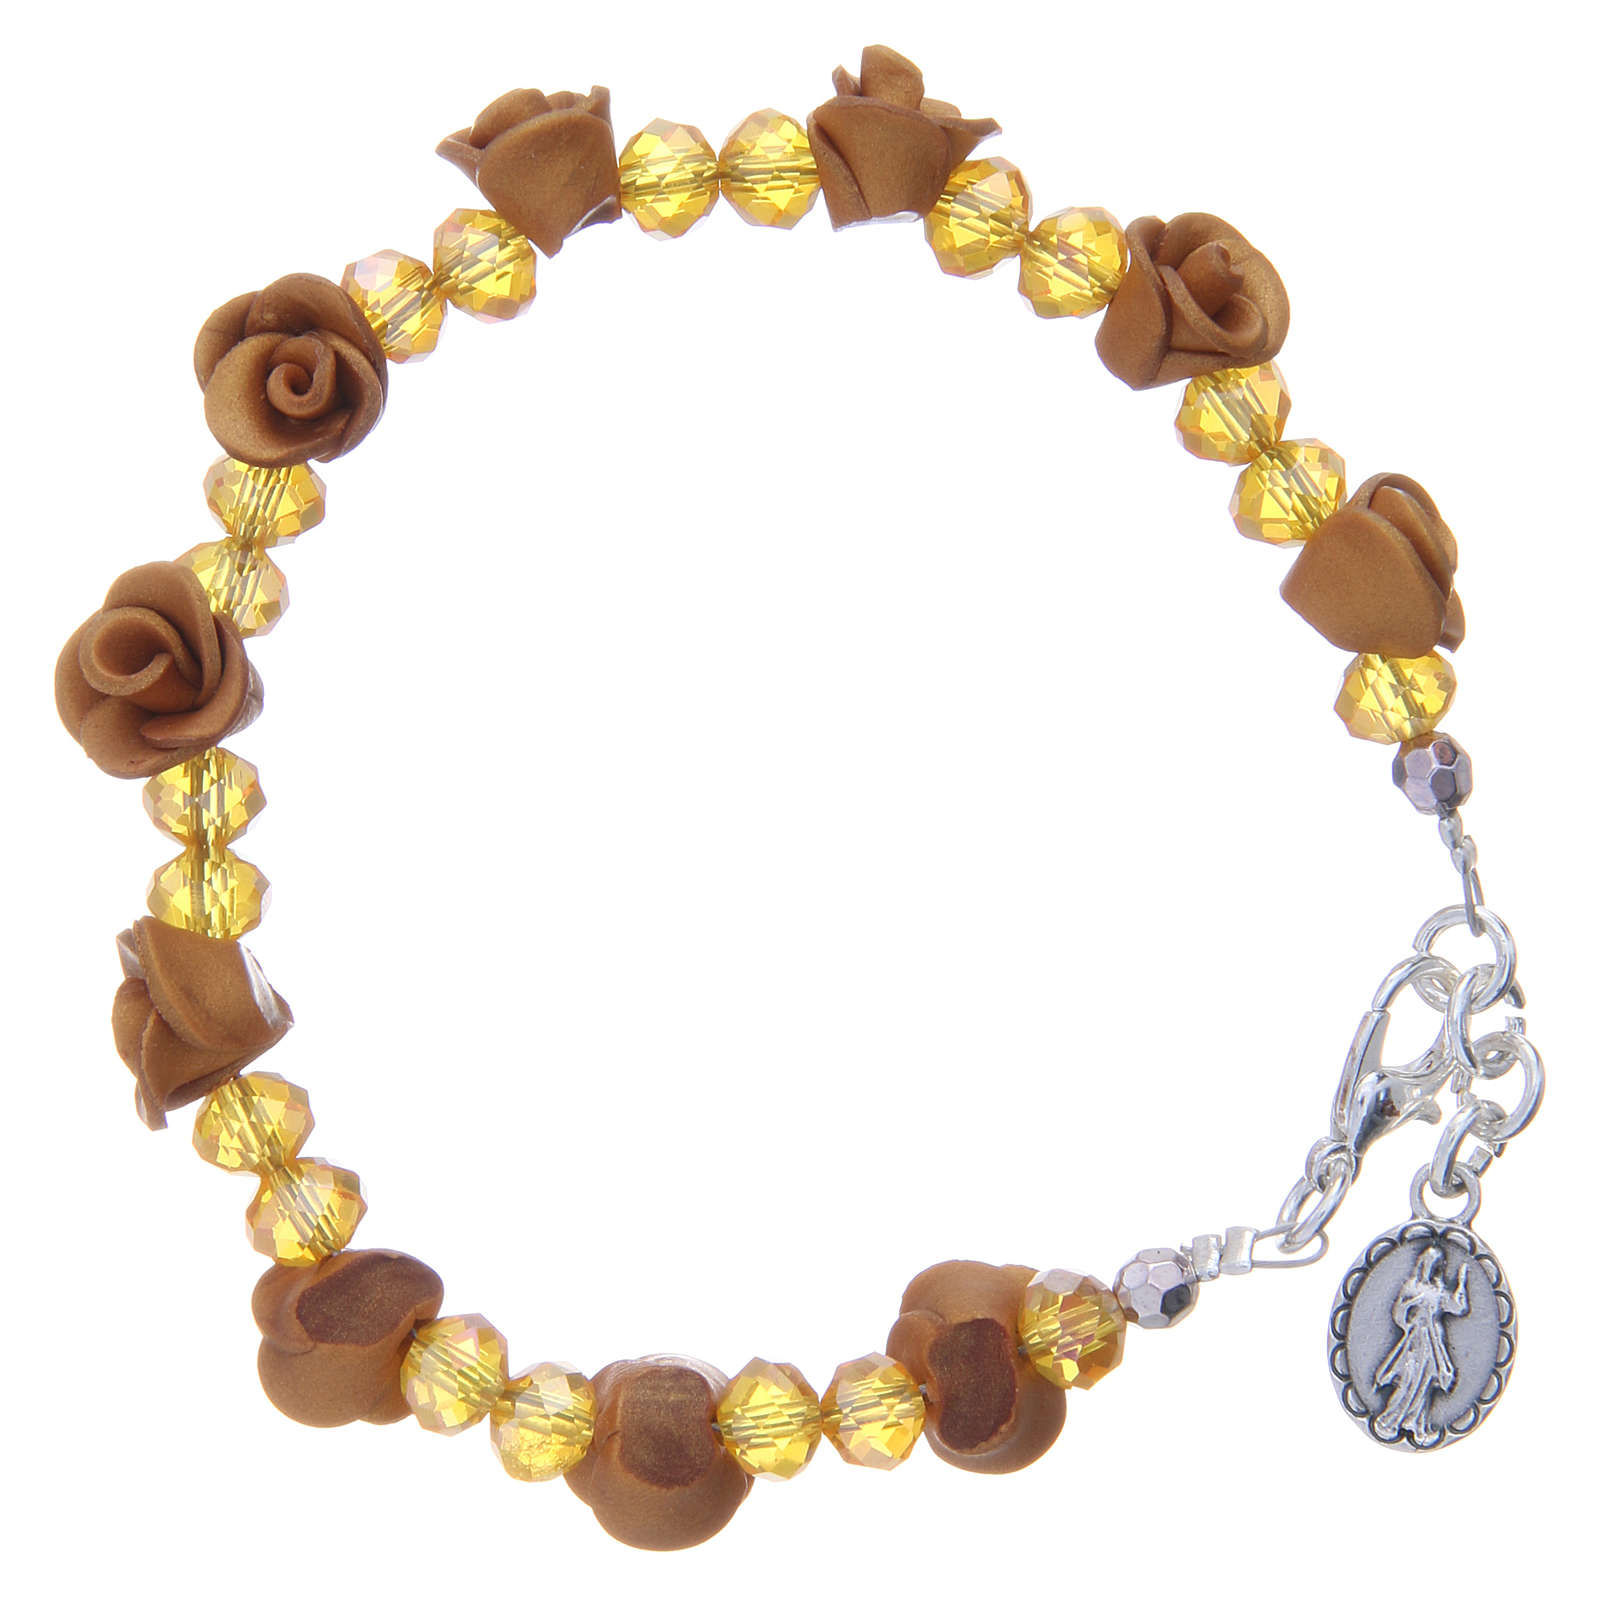 Medjugorje rosary bracelet, amber colour with crystal beads 4